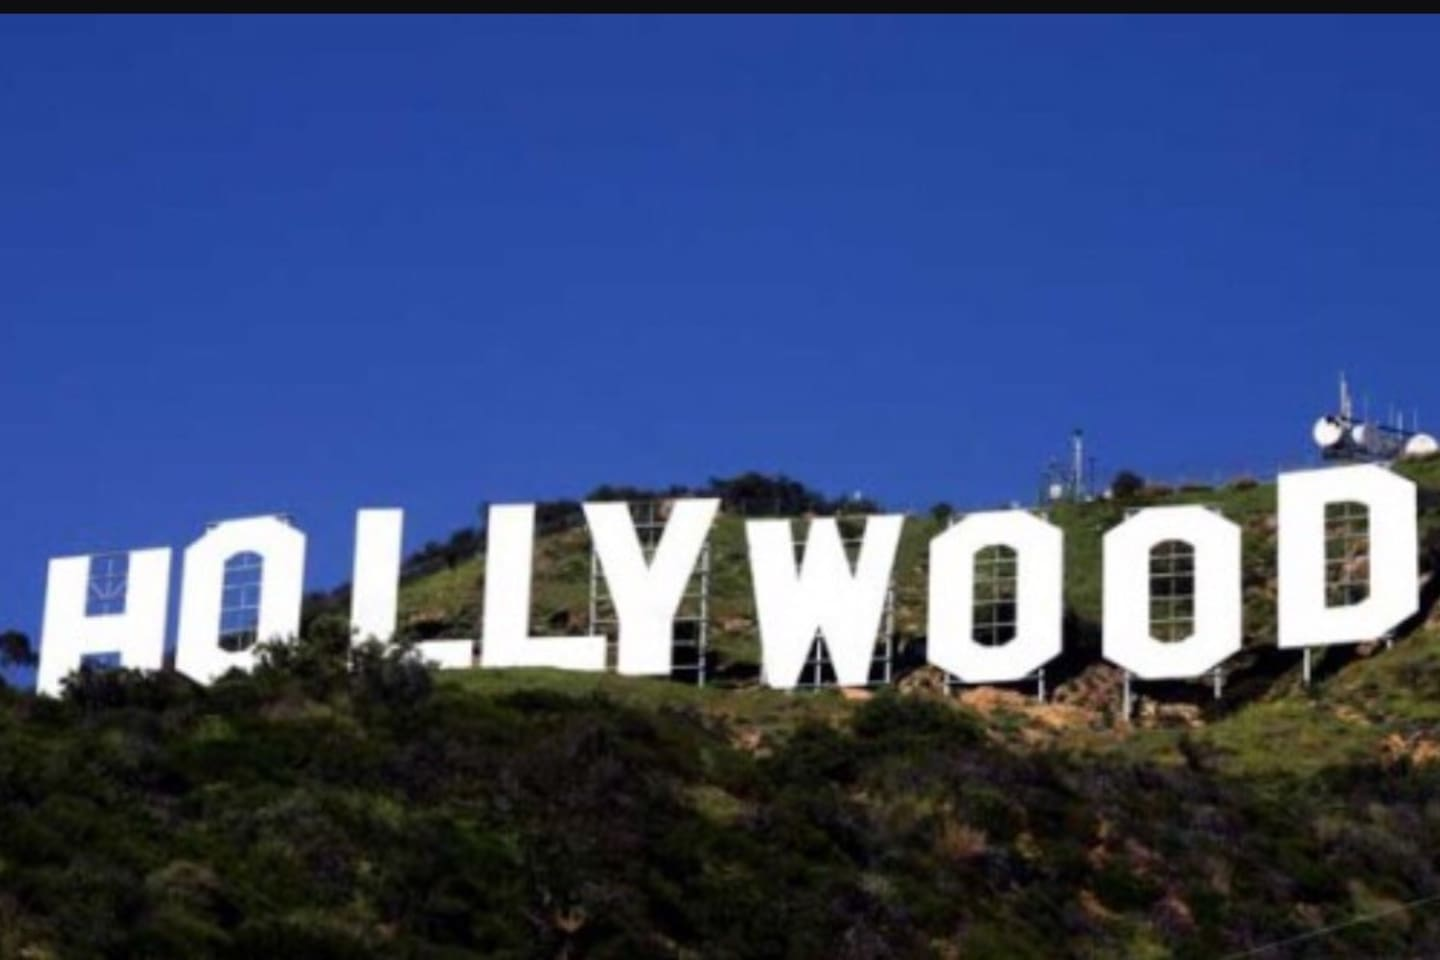 Best location in Hollywood